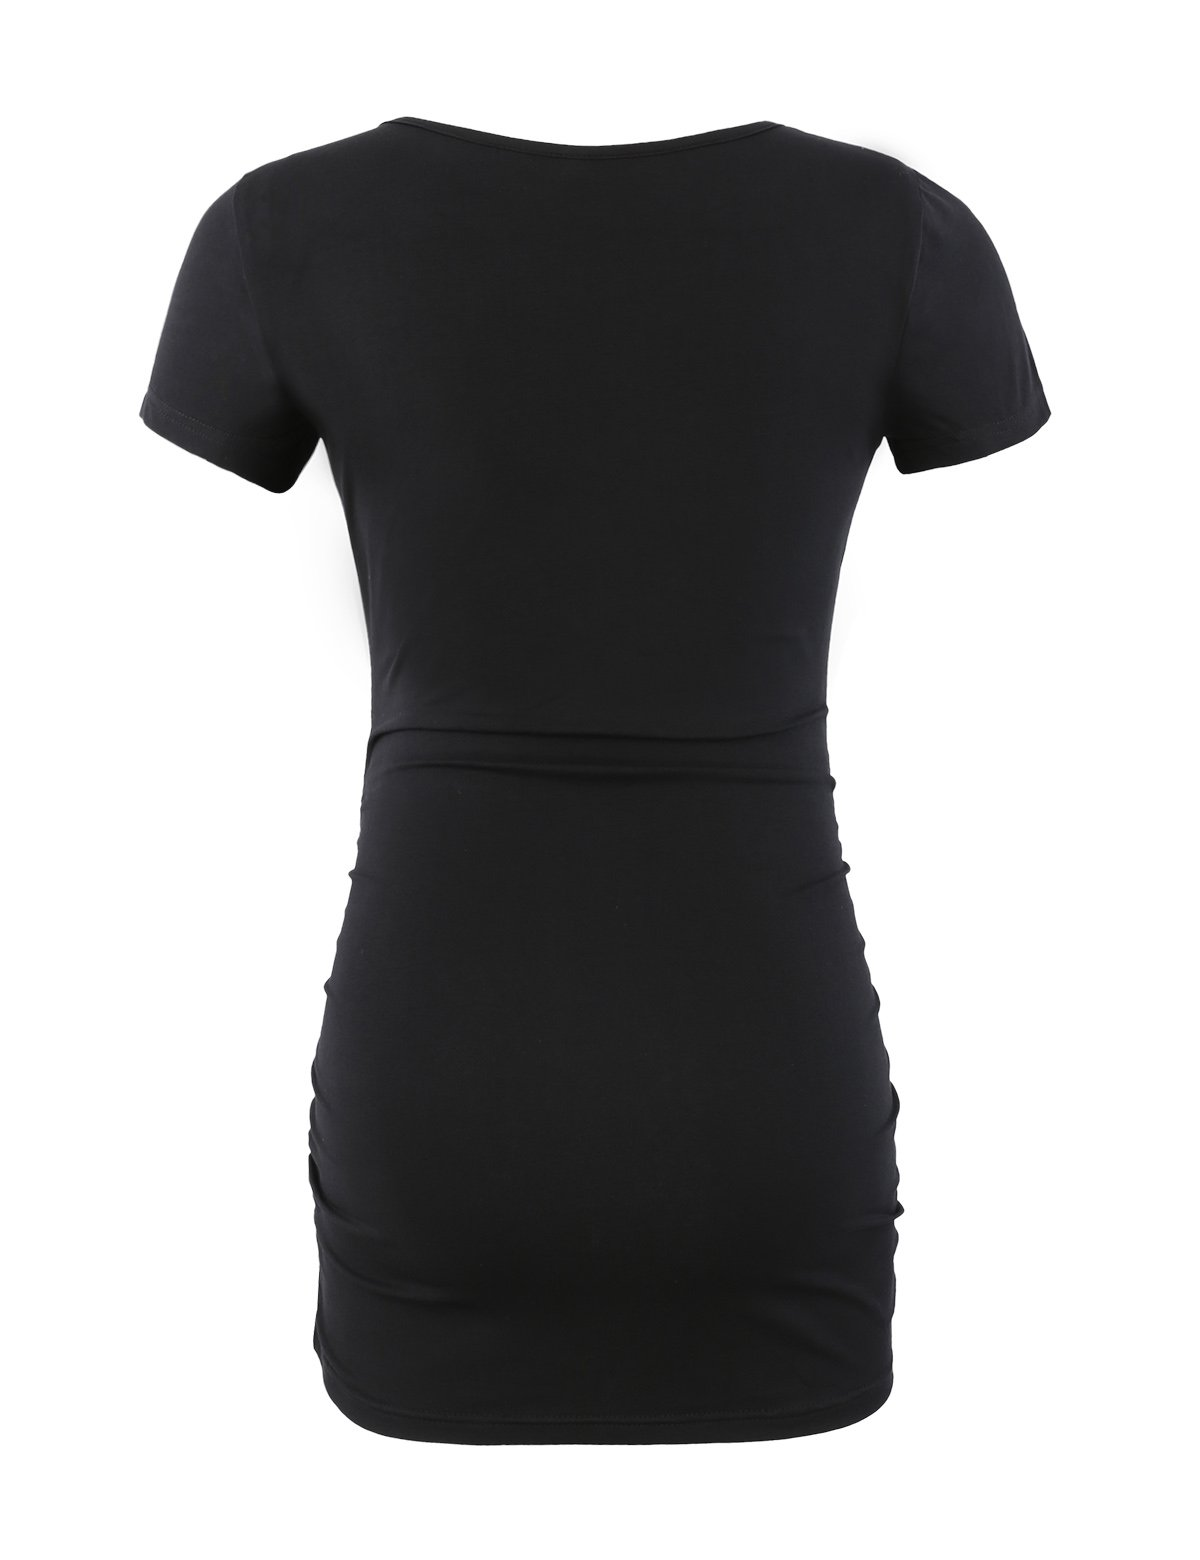 Maternity Shirt Maternity Tank Tops Maternity Top Womens Pregnancy Shirts Clothes Black L by Peauty (Image #3)